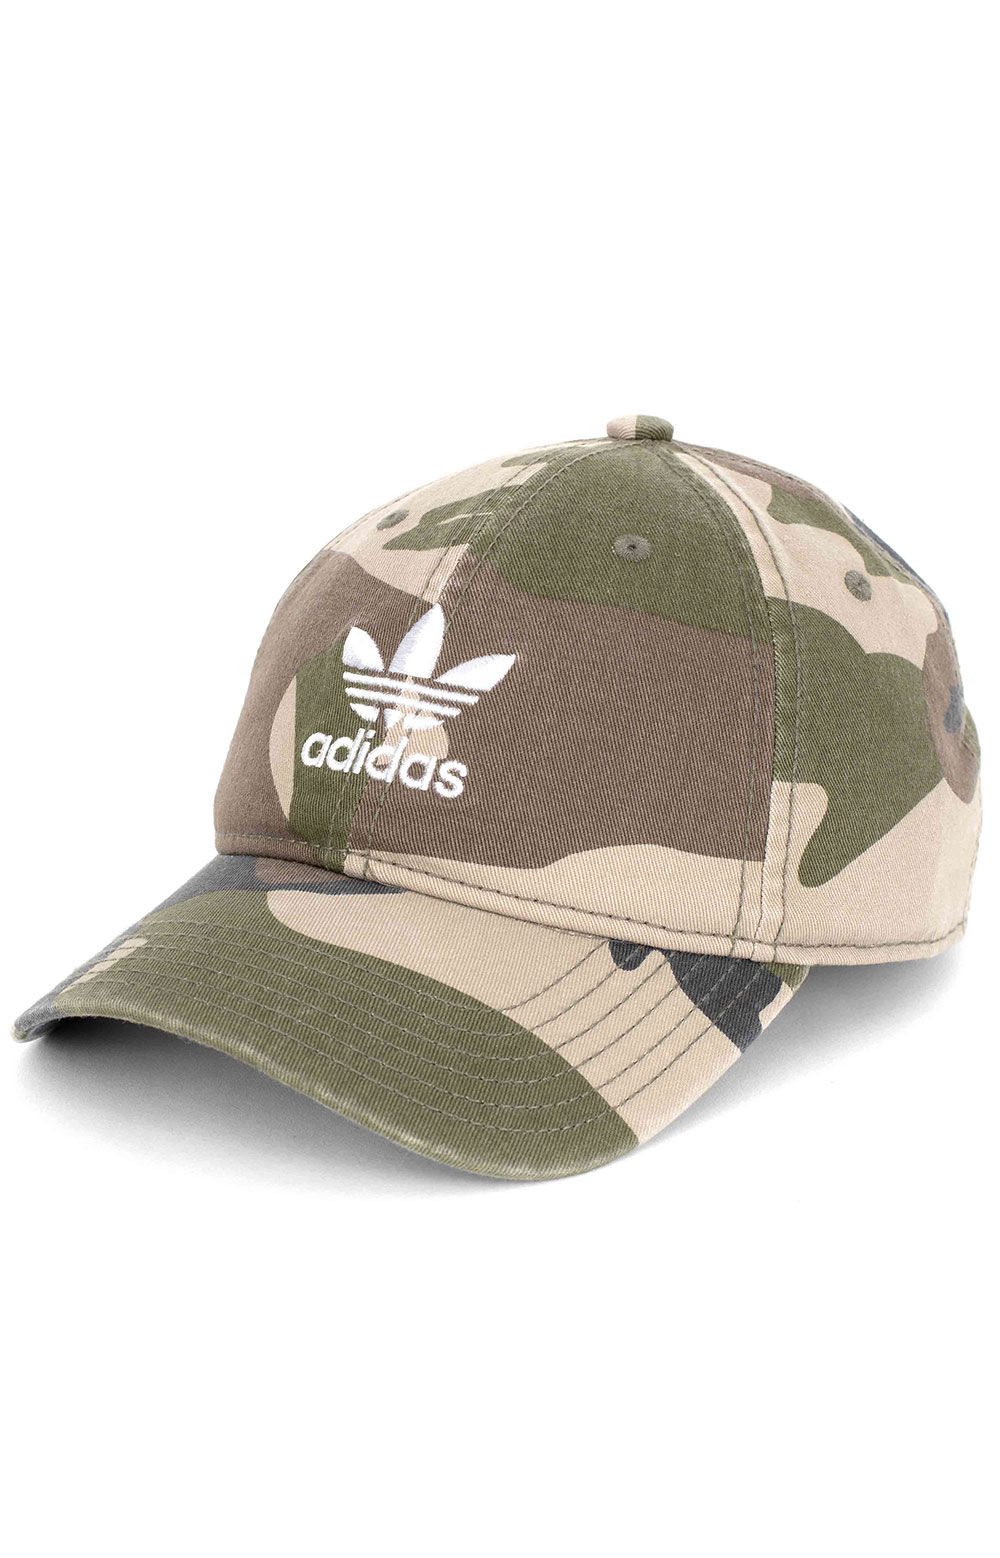 Relaxed Strap-Back Hat - AOP Camo Olive Cargo